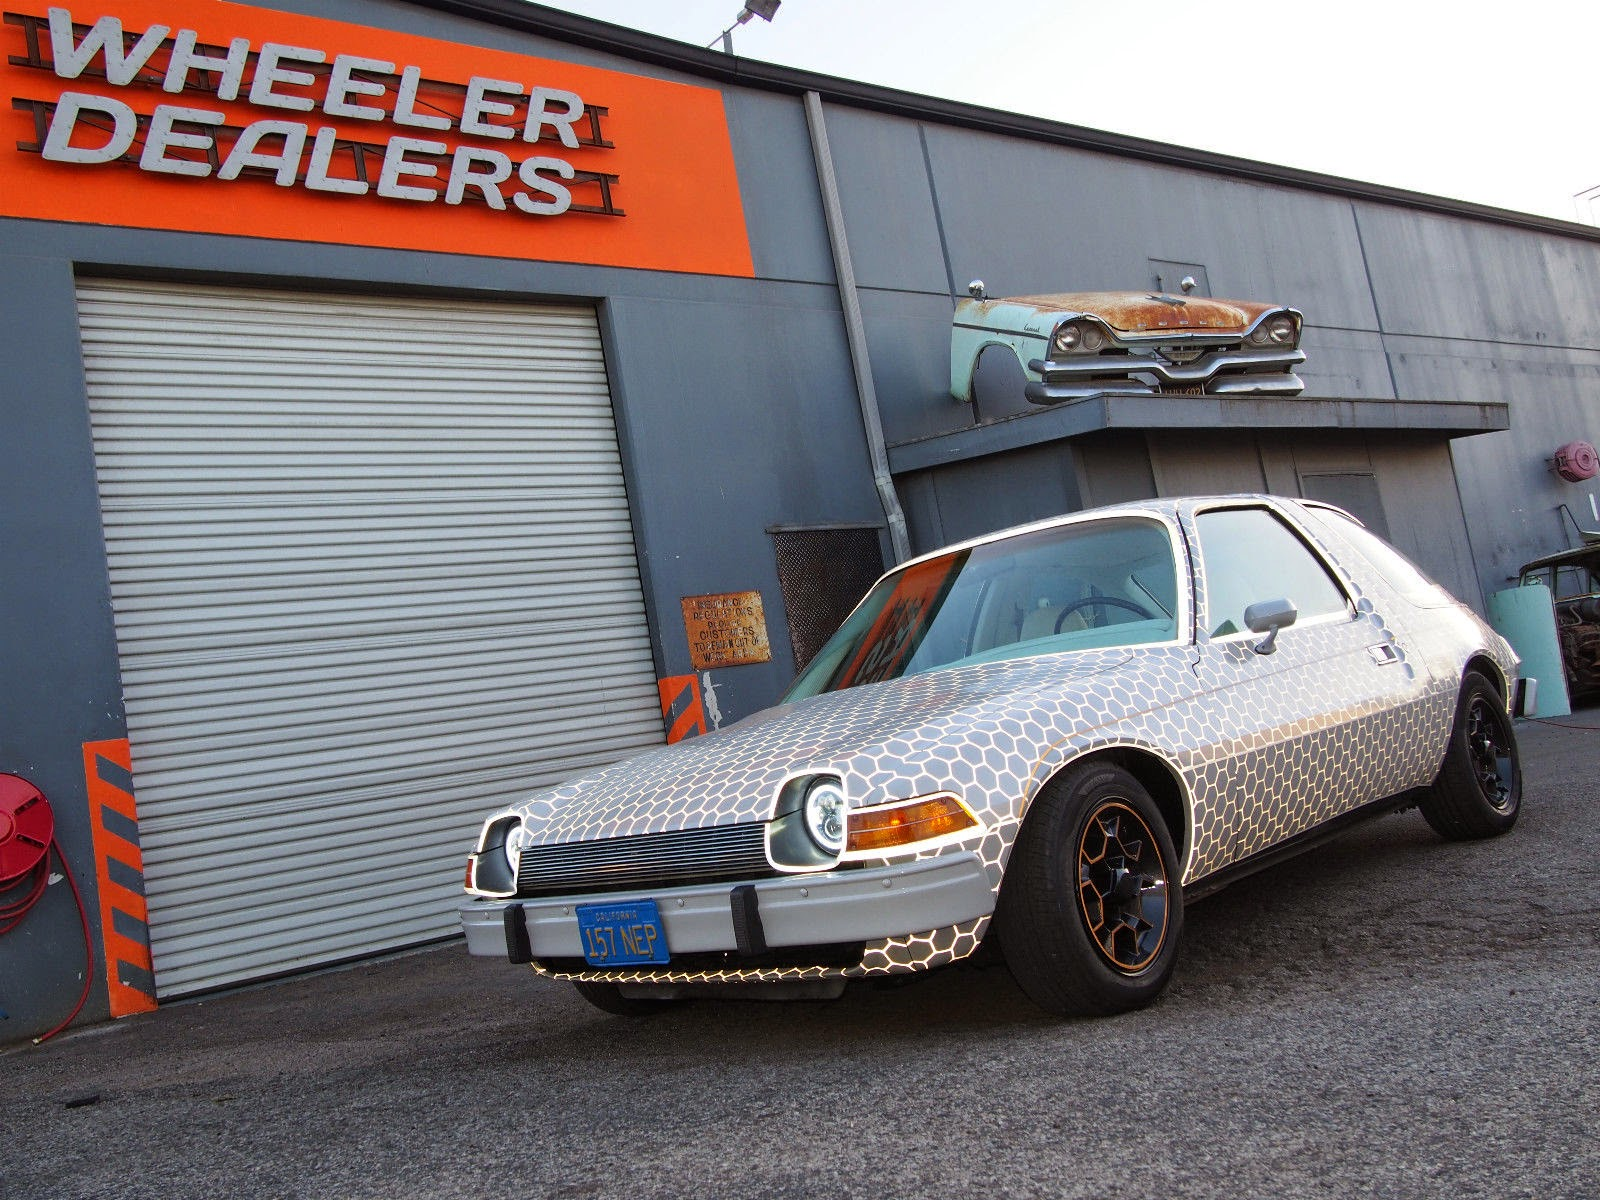 watched  amc pacer episode  wheeler dealers yesterday  spent    wrap